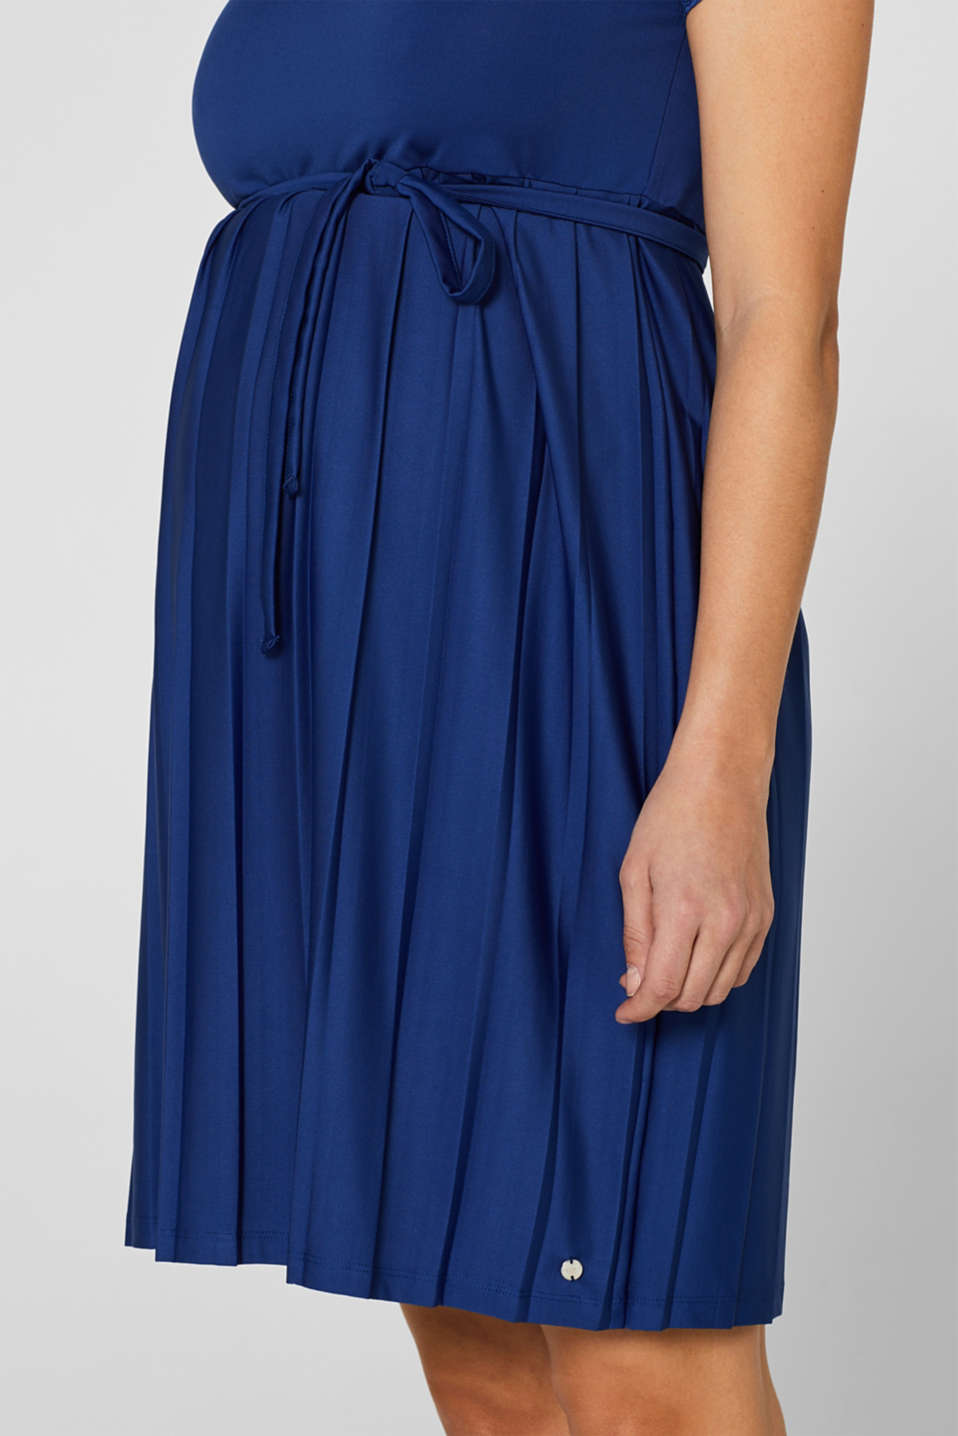 Lace-trimmed dress with a pleated skirt, LCDARK BLUE, detail image number 3